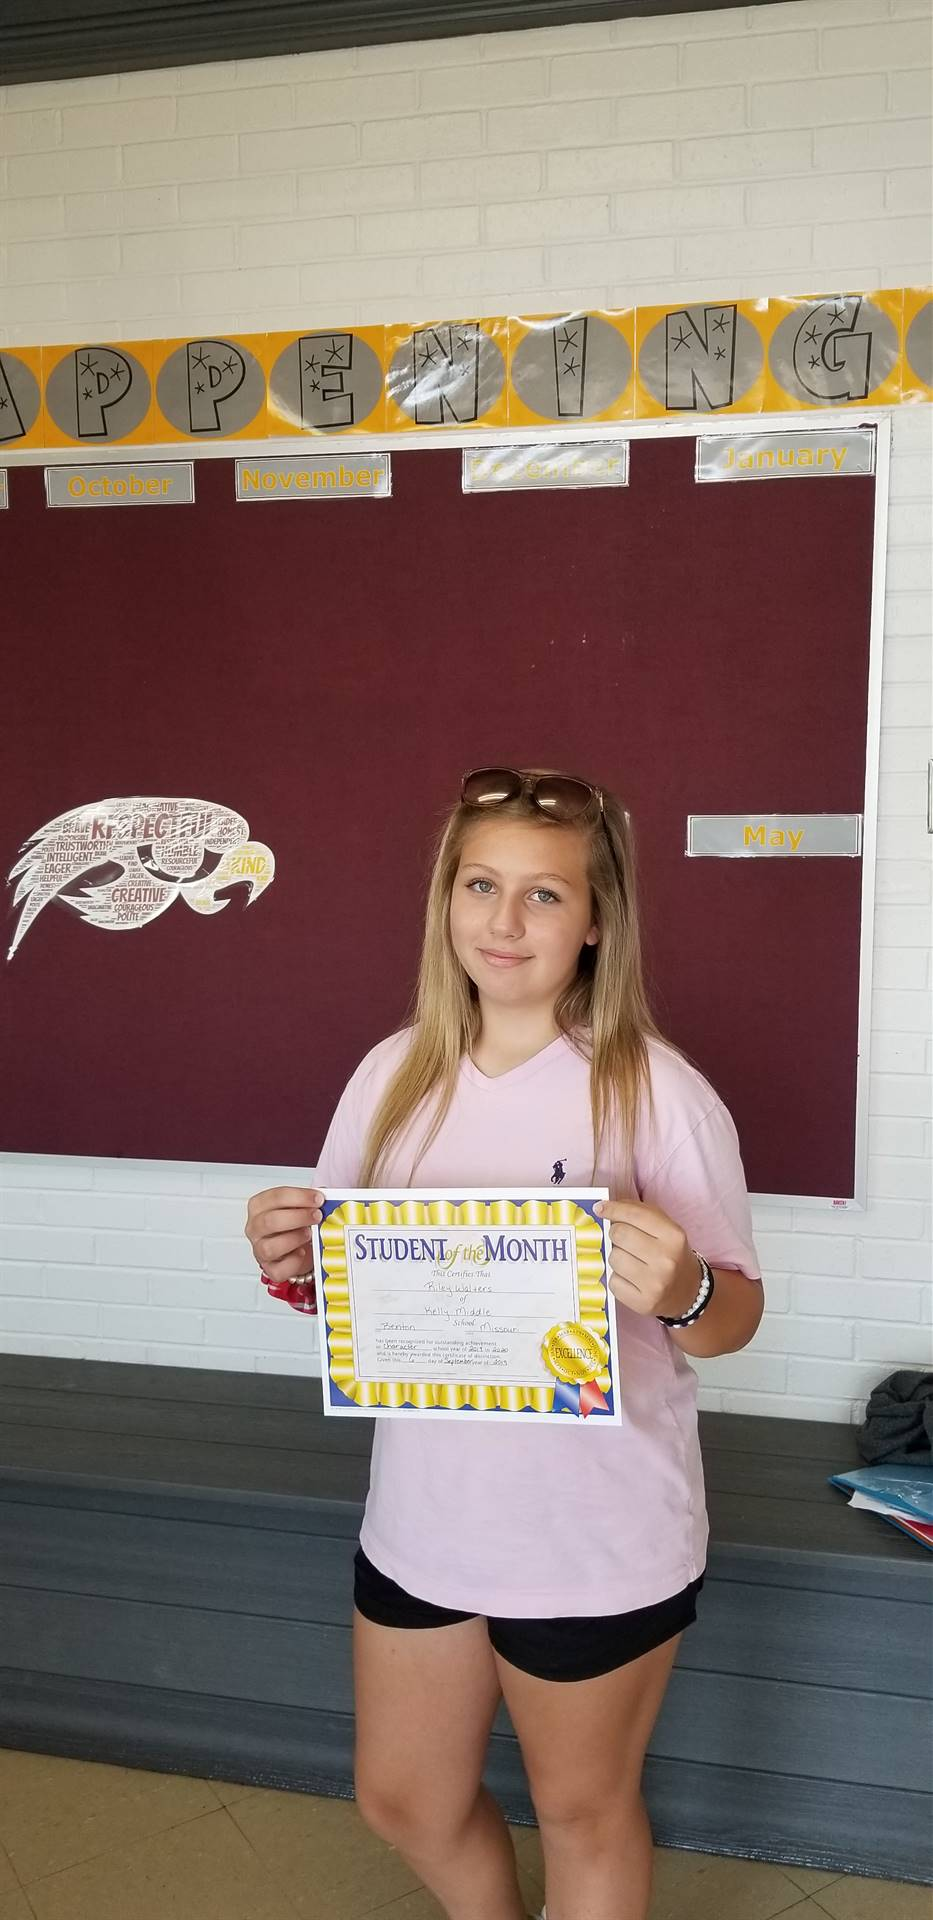 8th Grade Student of the Month - September